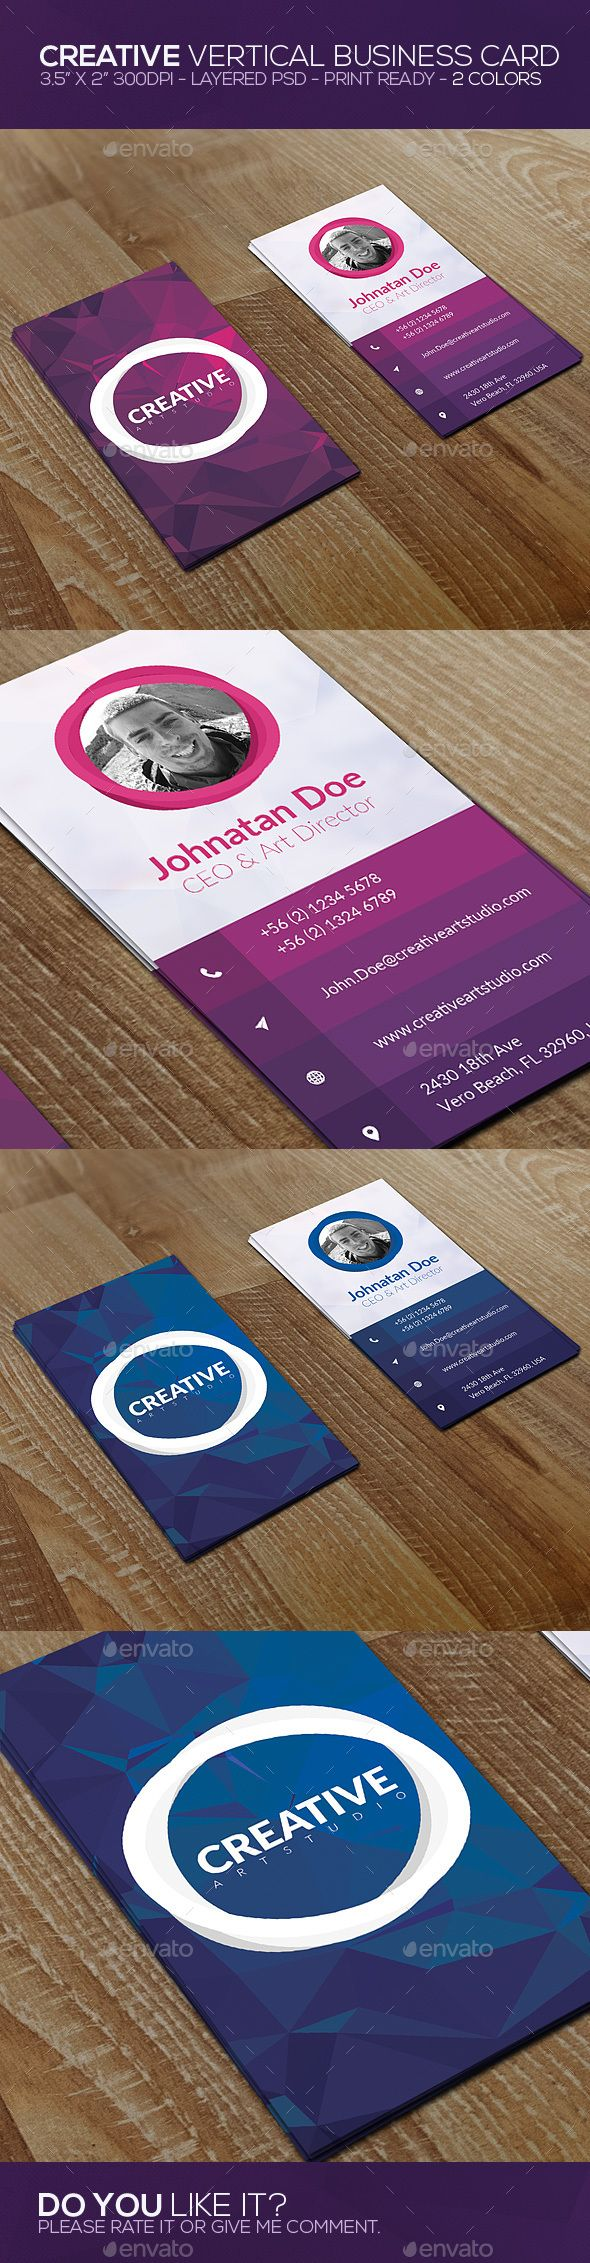 Creative Vertical Business Card Template PSD Download Here Graphicriver Item 15410979refksioks